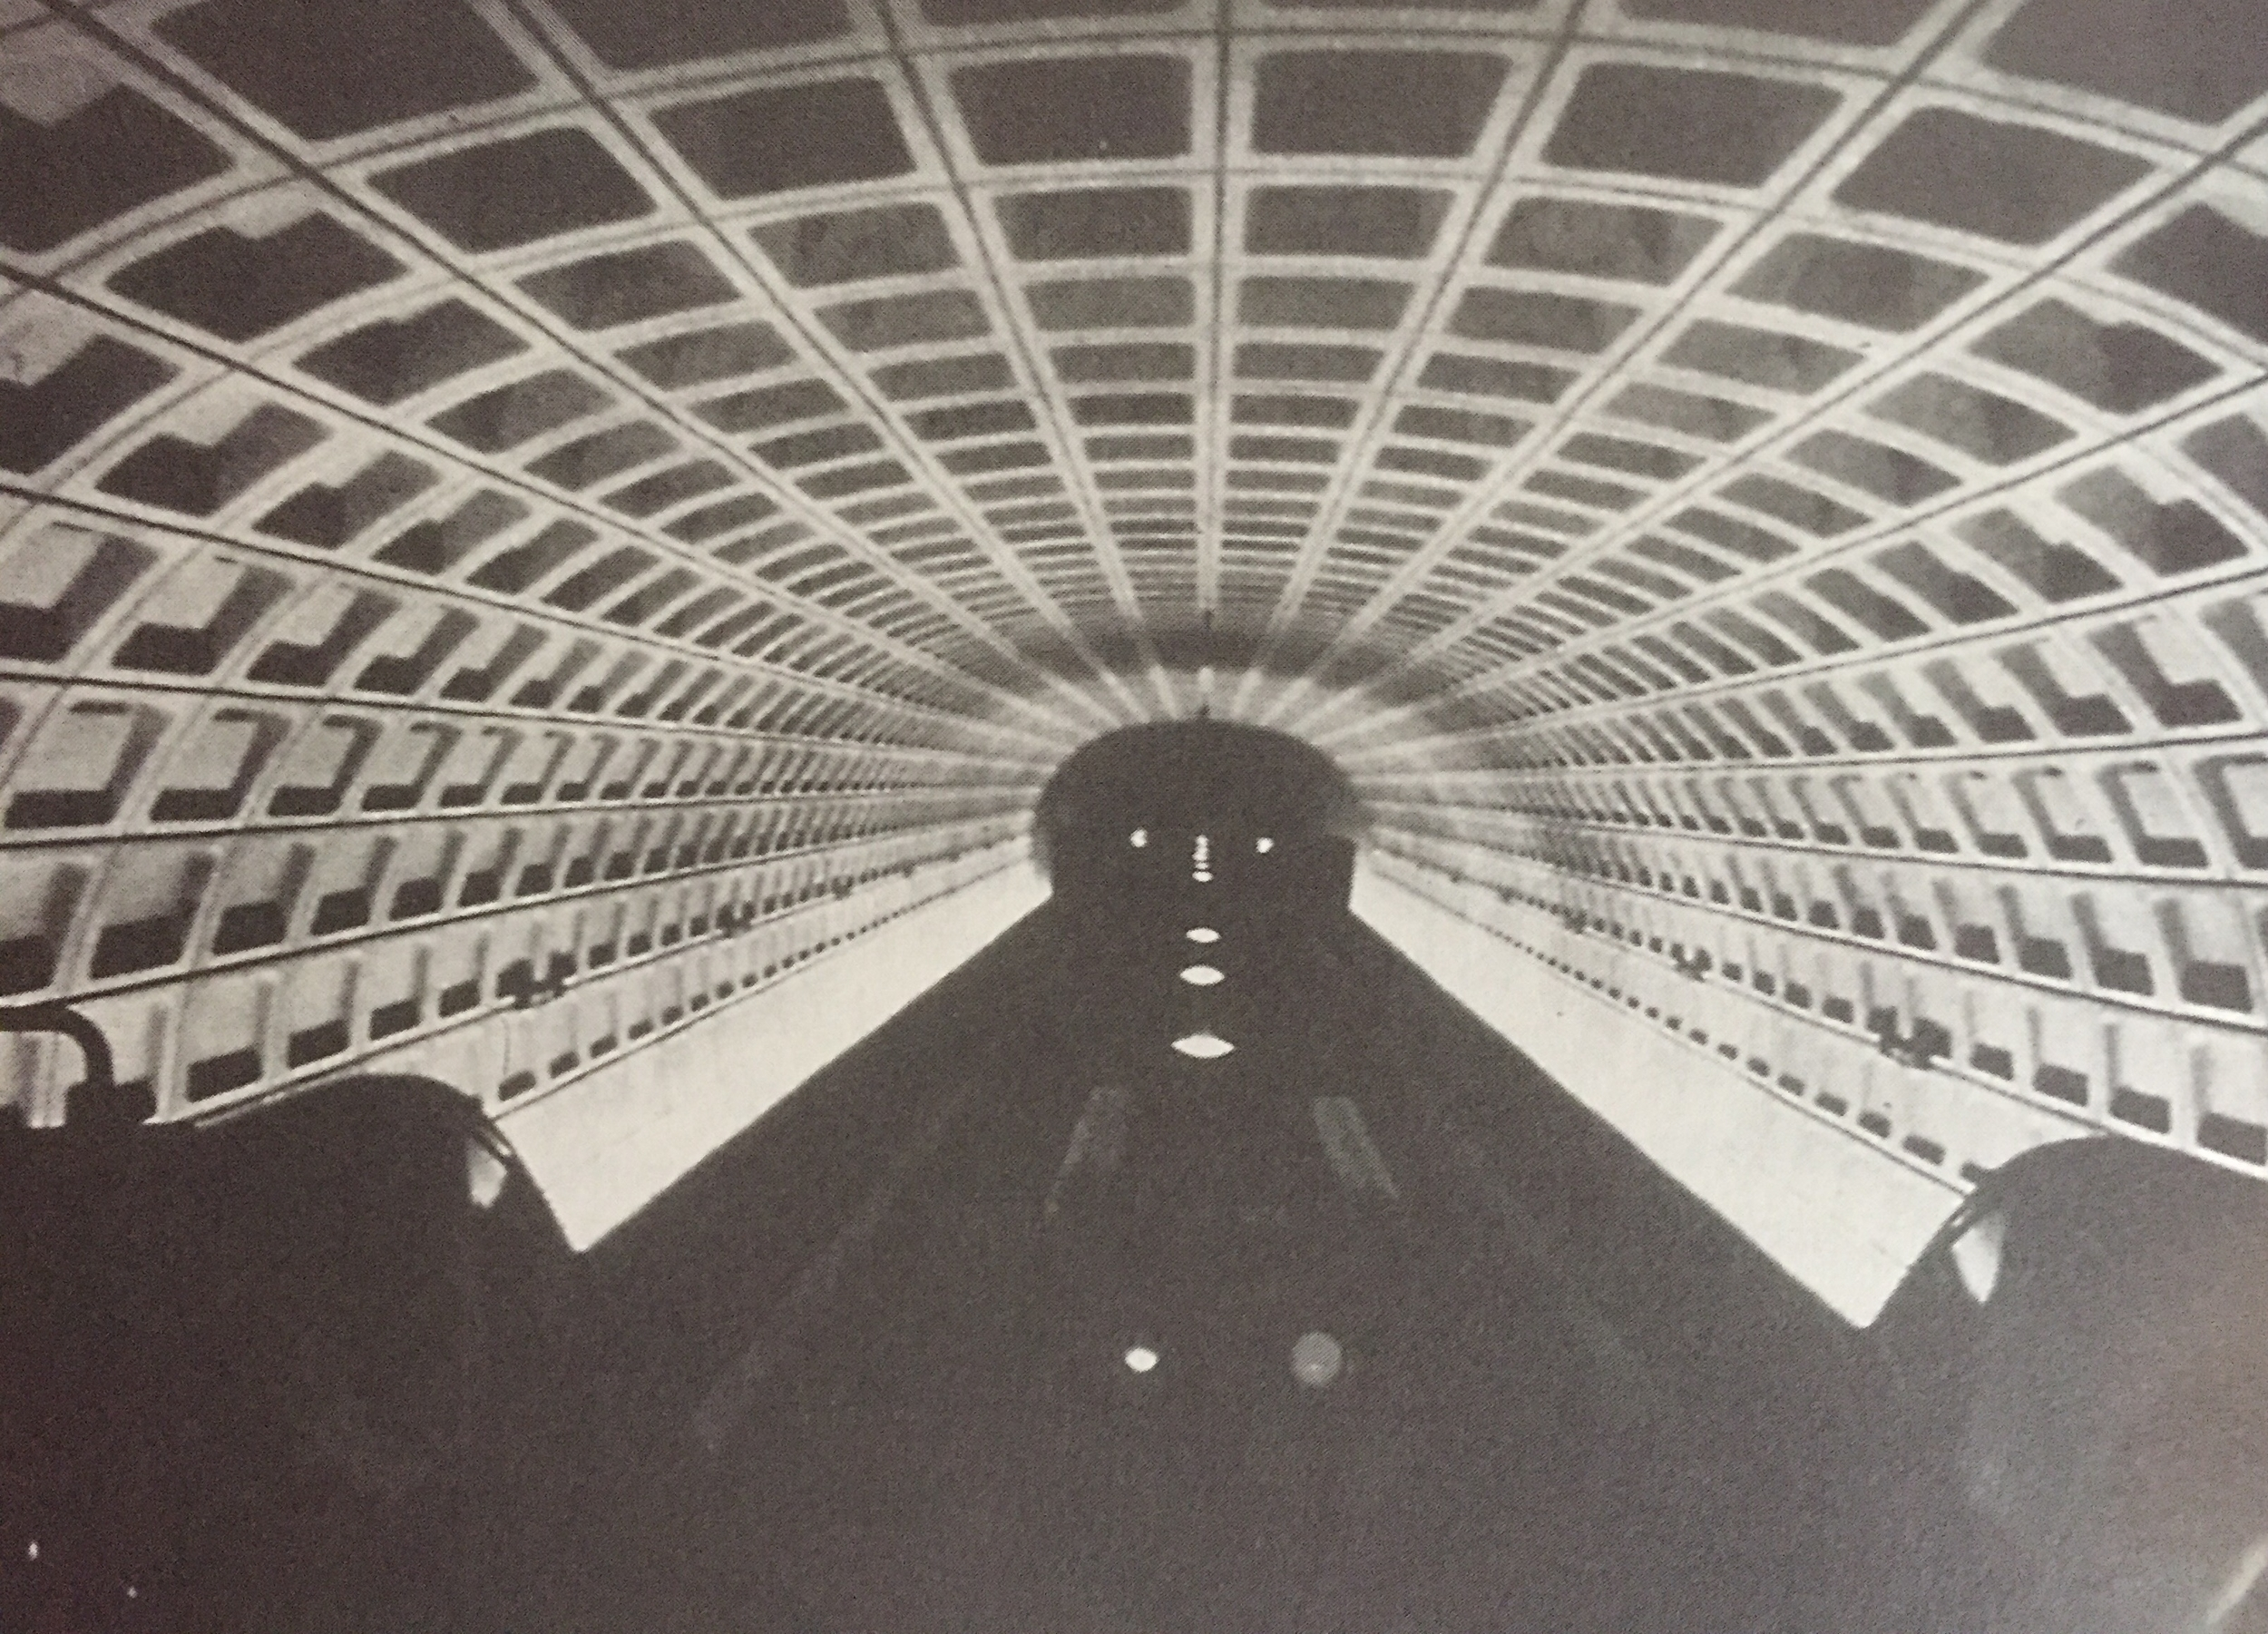 WASHINGTON METRO 1978